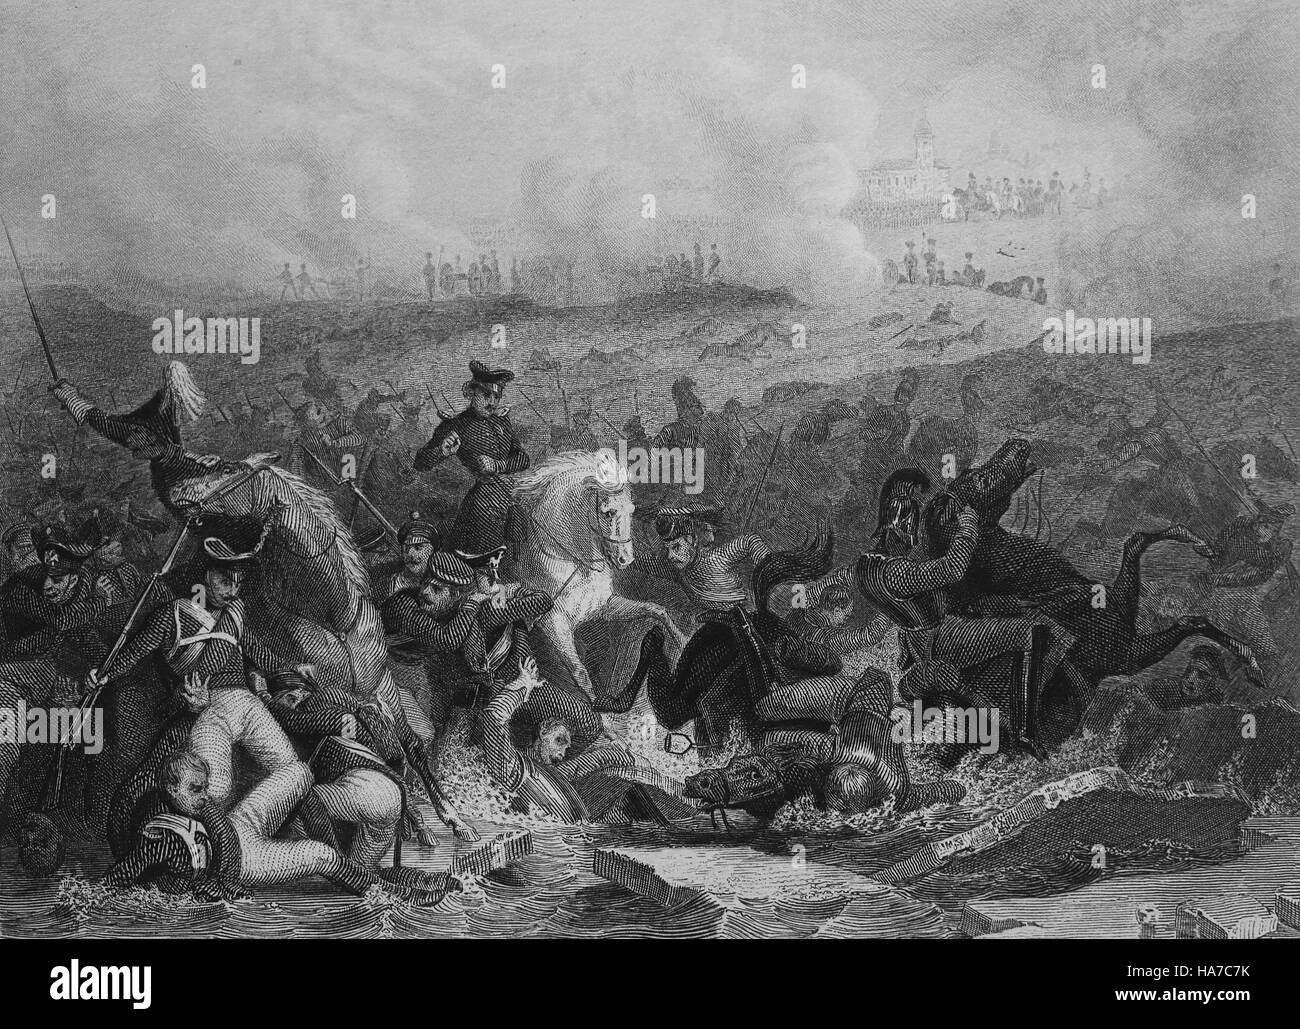 Battle of Austerlitz or Battle of 3 Emperors. 2 Decembre 1805. Napoleonic Wars. Engraving. 19th century. - Stock Image